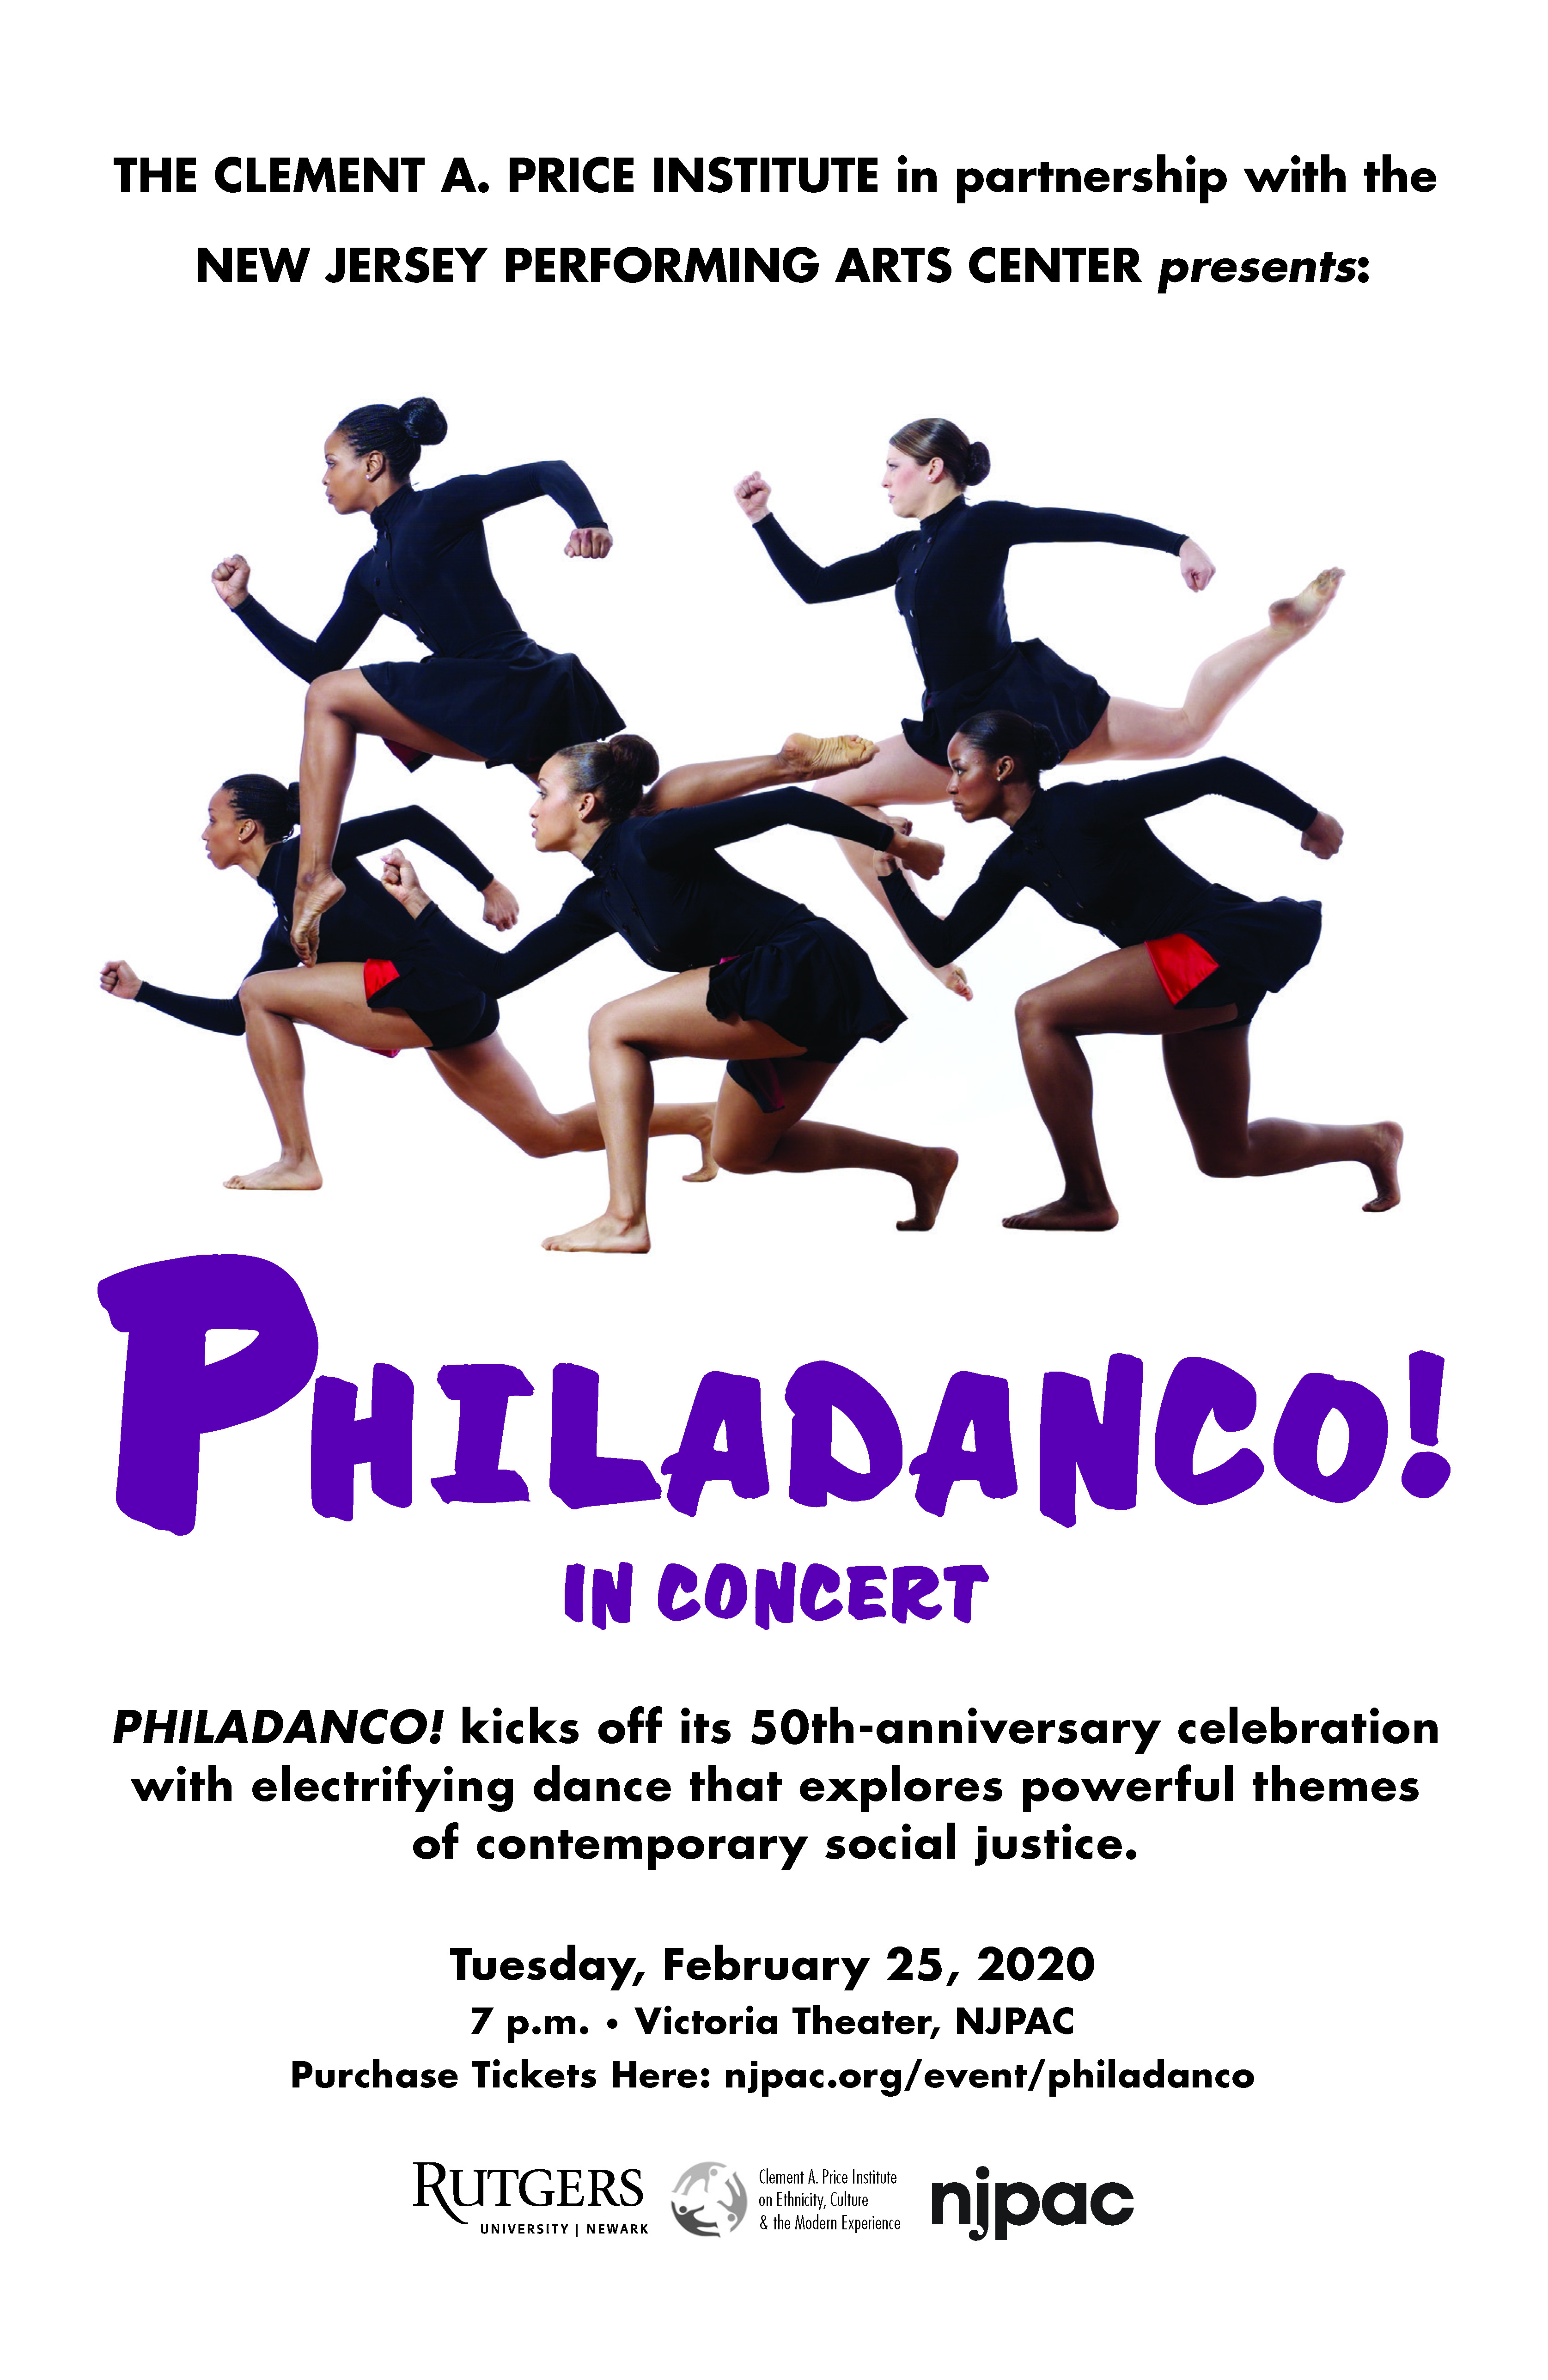 Philadanco! In Concert- Flyer reads: Philandanco! In Concert, Philadanco! Kicks off its 50th anniversary celebration with electrifying dance and explores themes of contemporary social justice. Tuesday, February 25, 2020 at the Victoria Theater, NJPAC